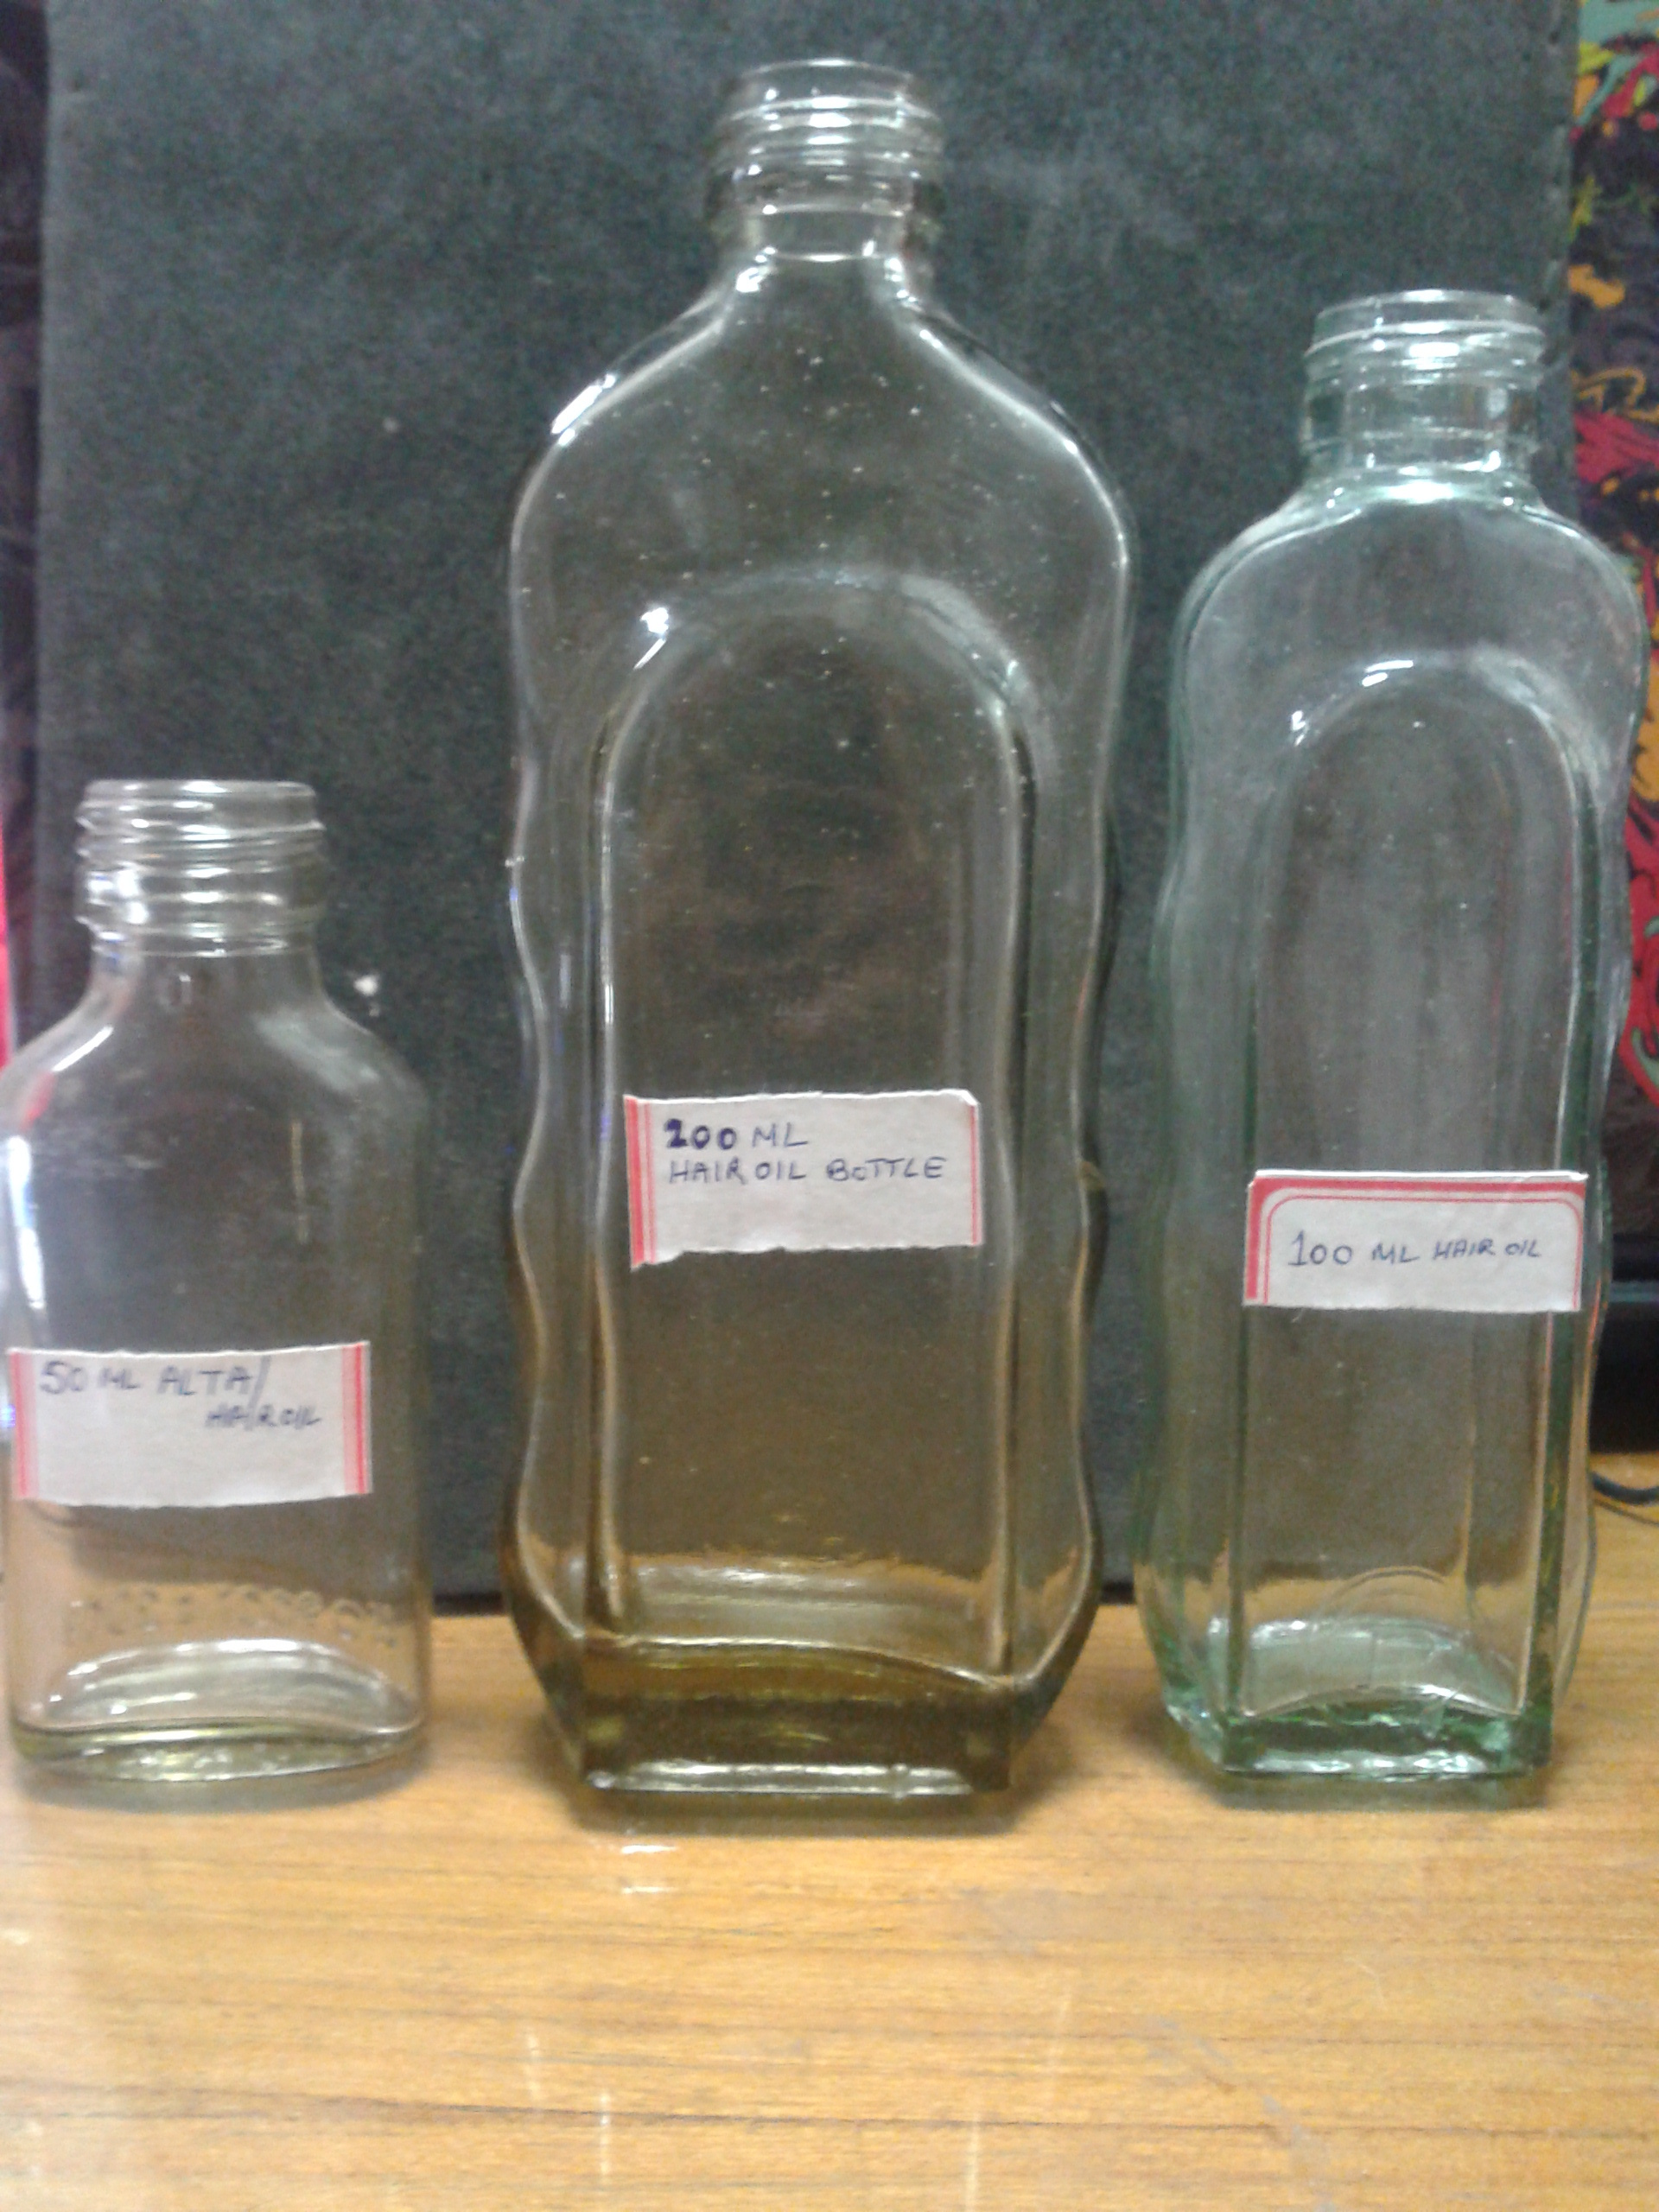 Hair Oil Bottles